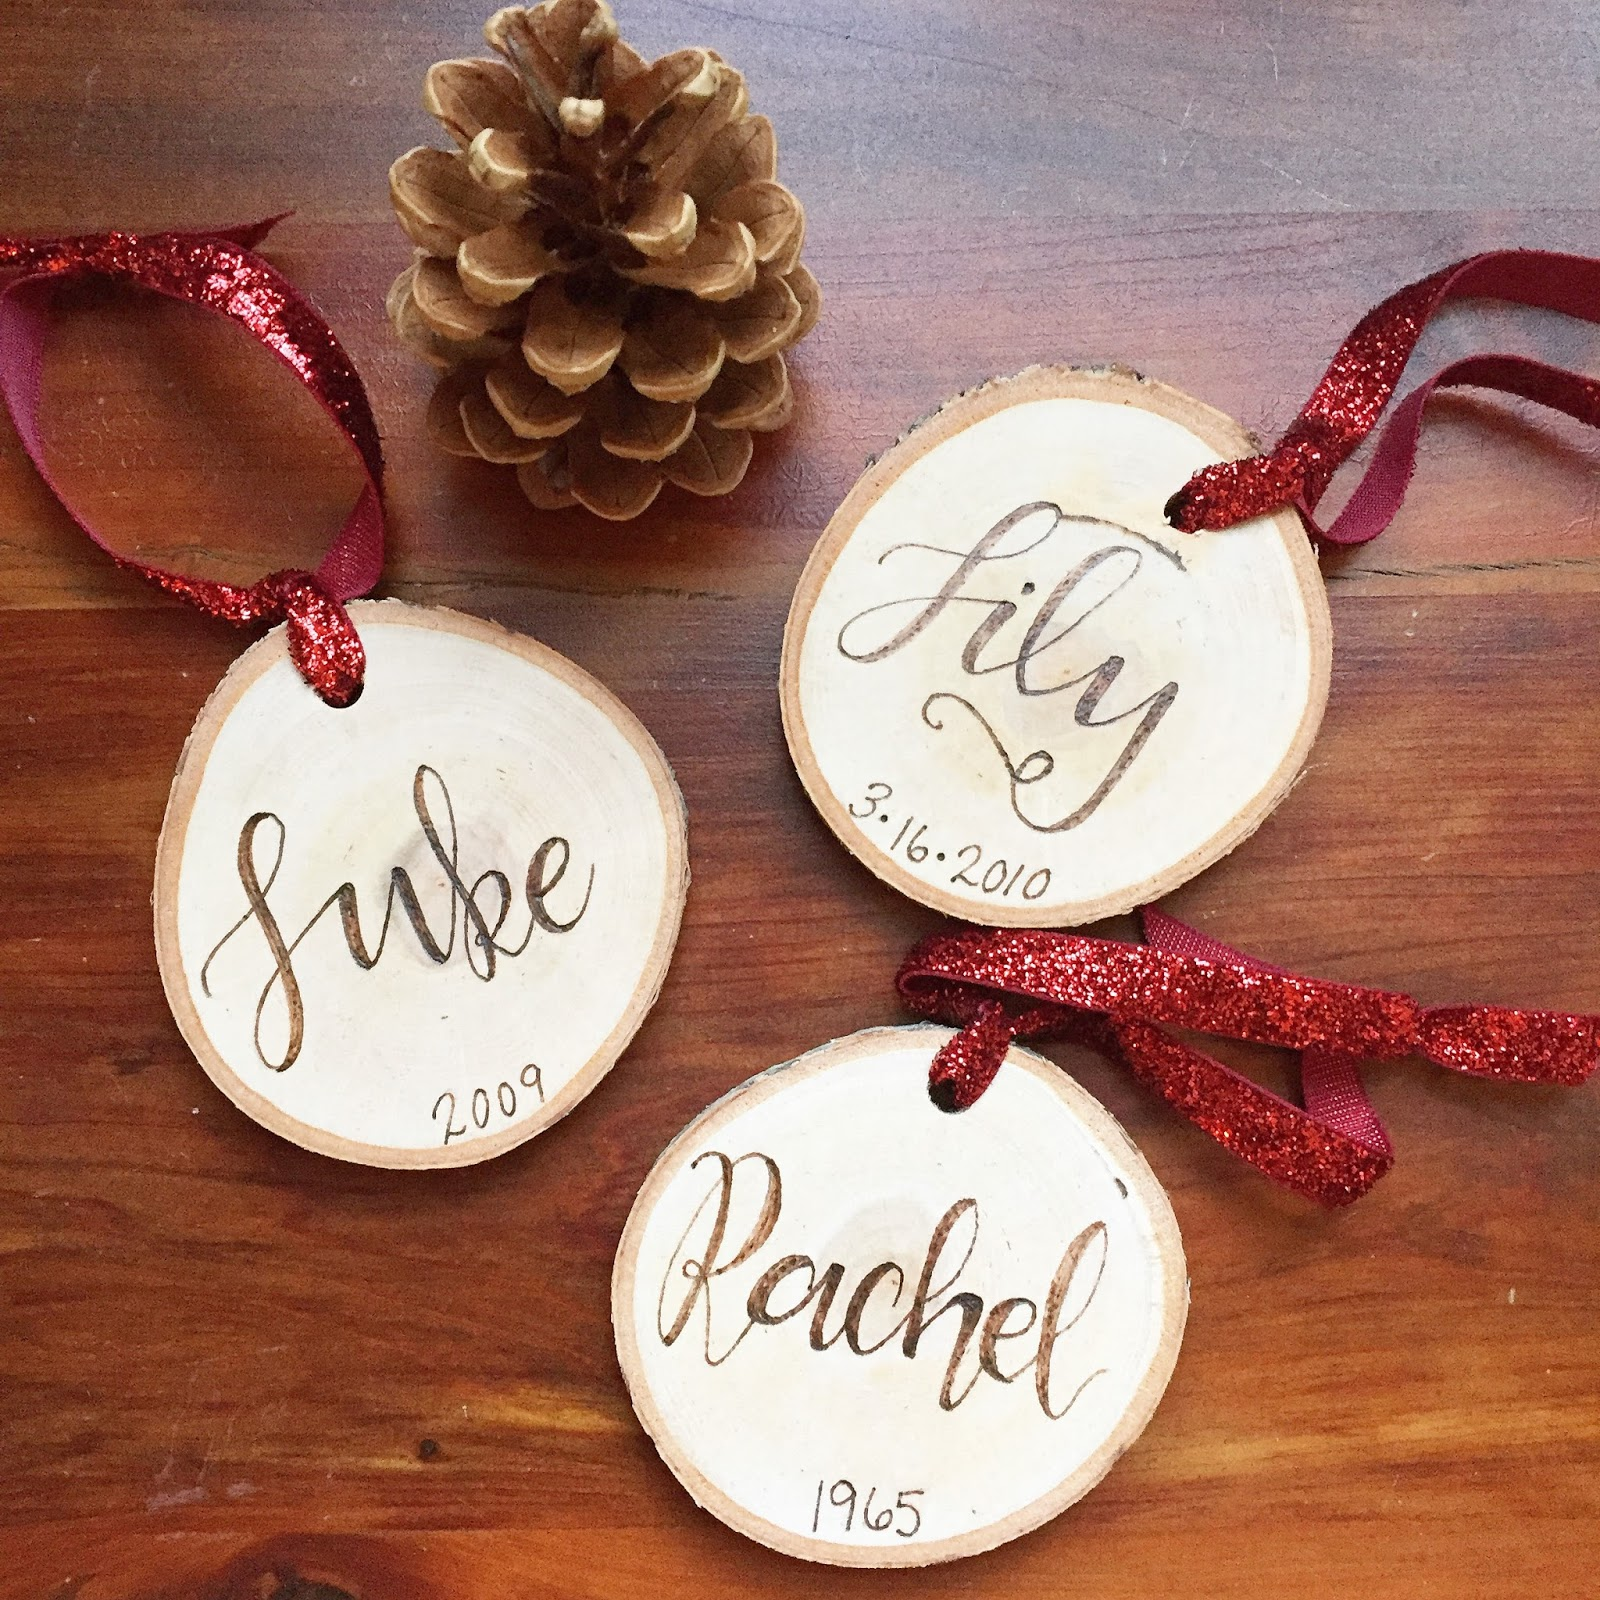 These Memorial Wood Burned Christmas Ornaments From Luminous Light Studio Since Last Year One For Each Of My Ls And One For My Aunt Rachel